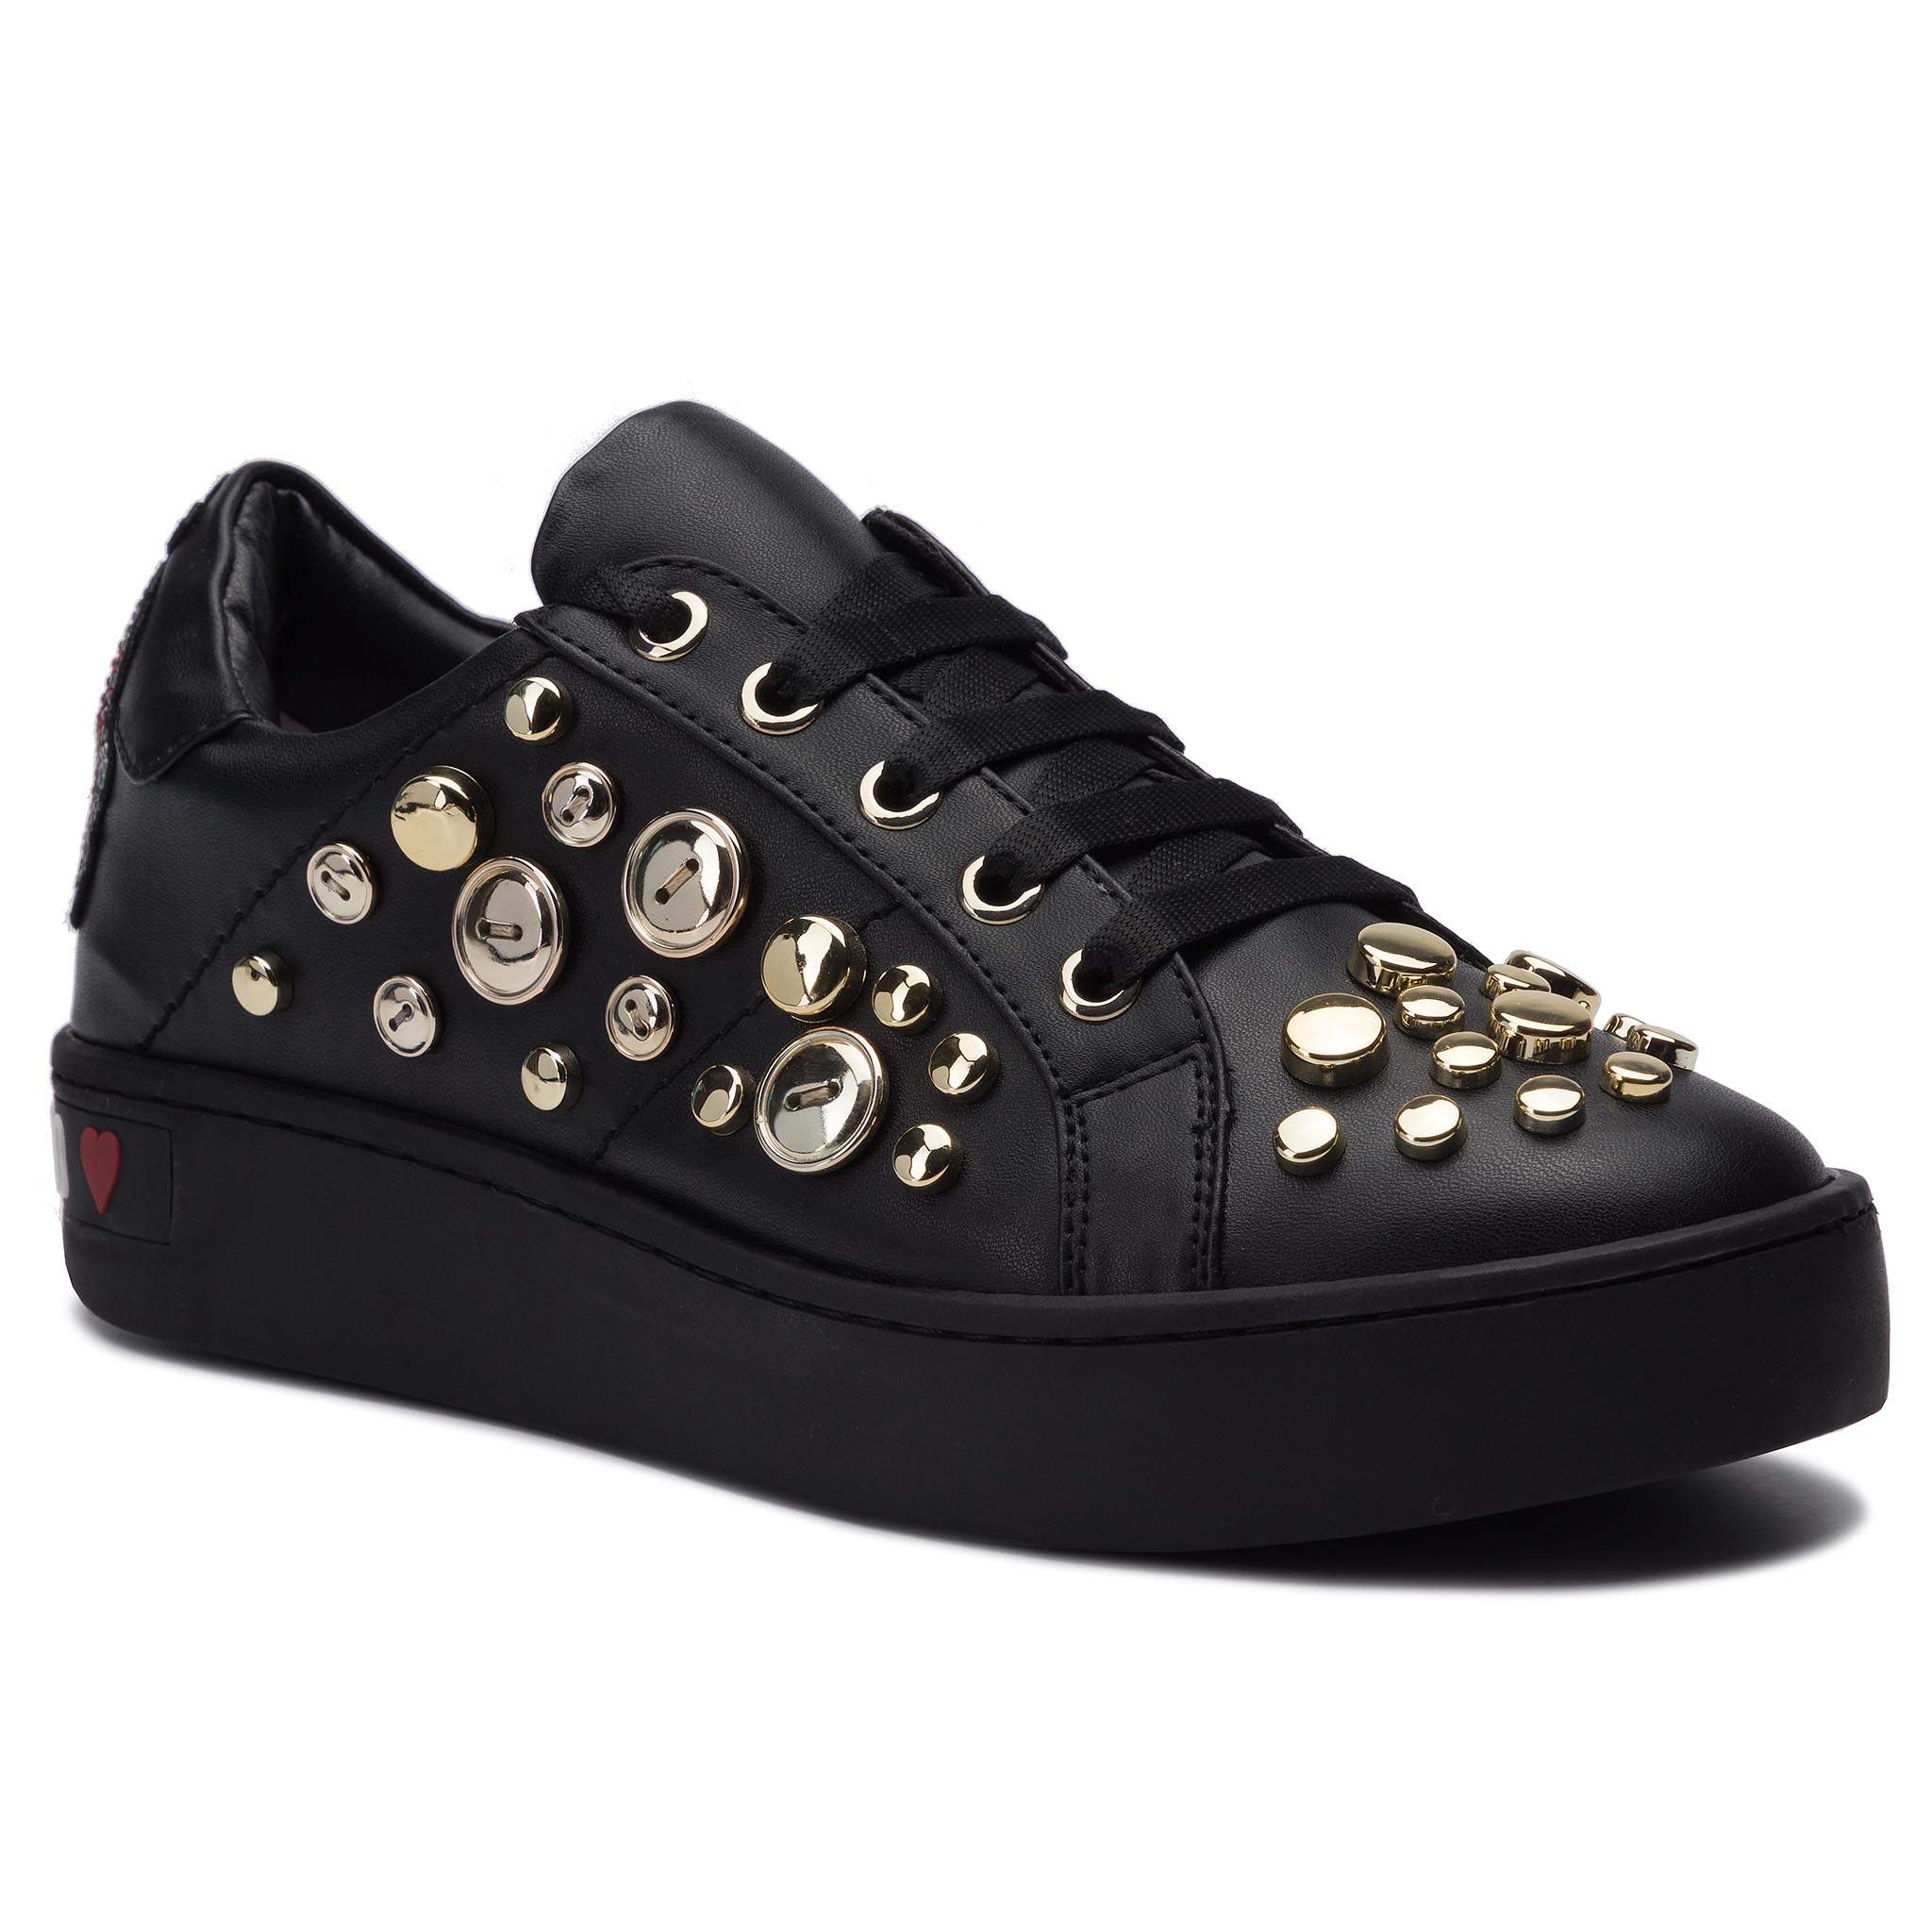 Sneakers LOVE MOSCHINO - JA15103G18IB0000 Nero